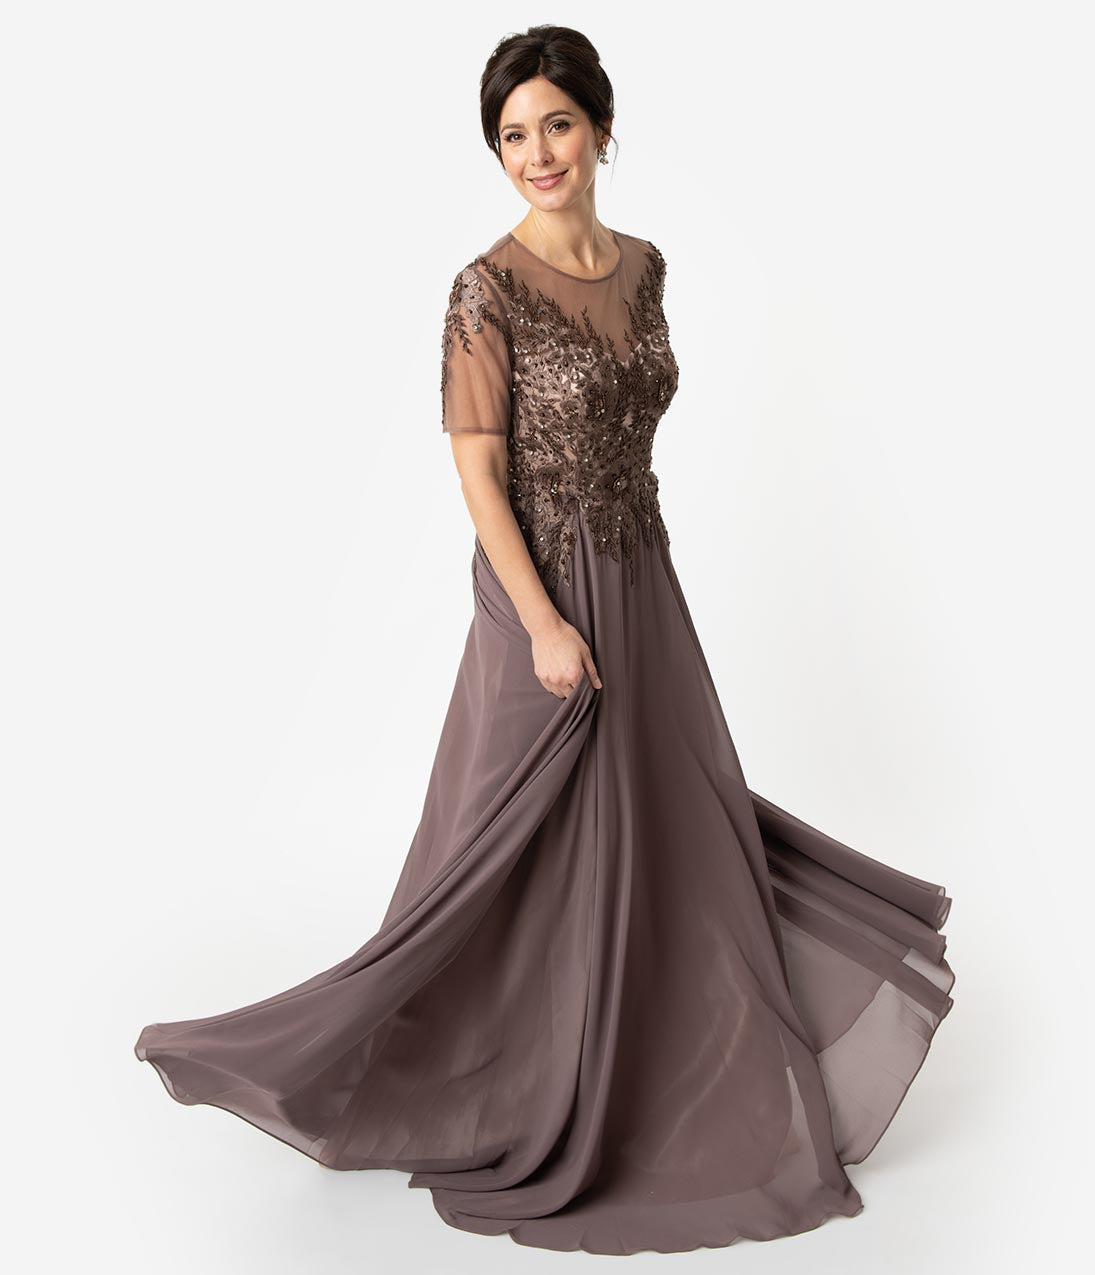 1940s Formal Dresses, Evening Gowns History Mocha Brown Sleeved Chiffon Crystal Embellished Long Dress $131.00 AT vintagedancer.com